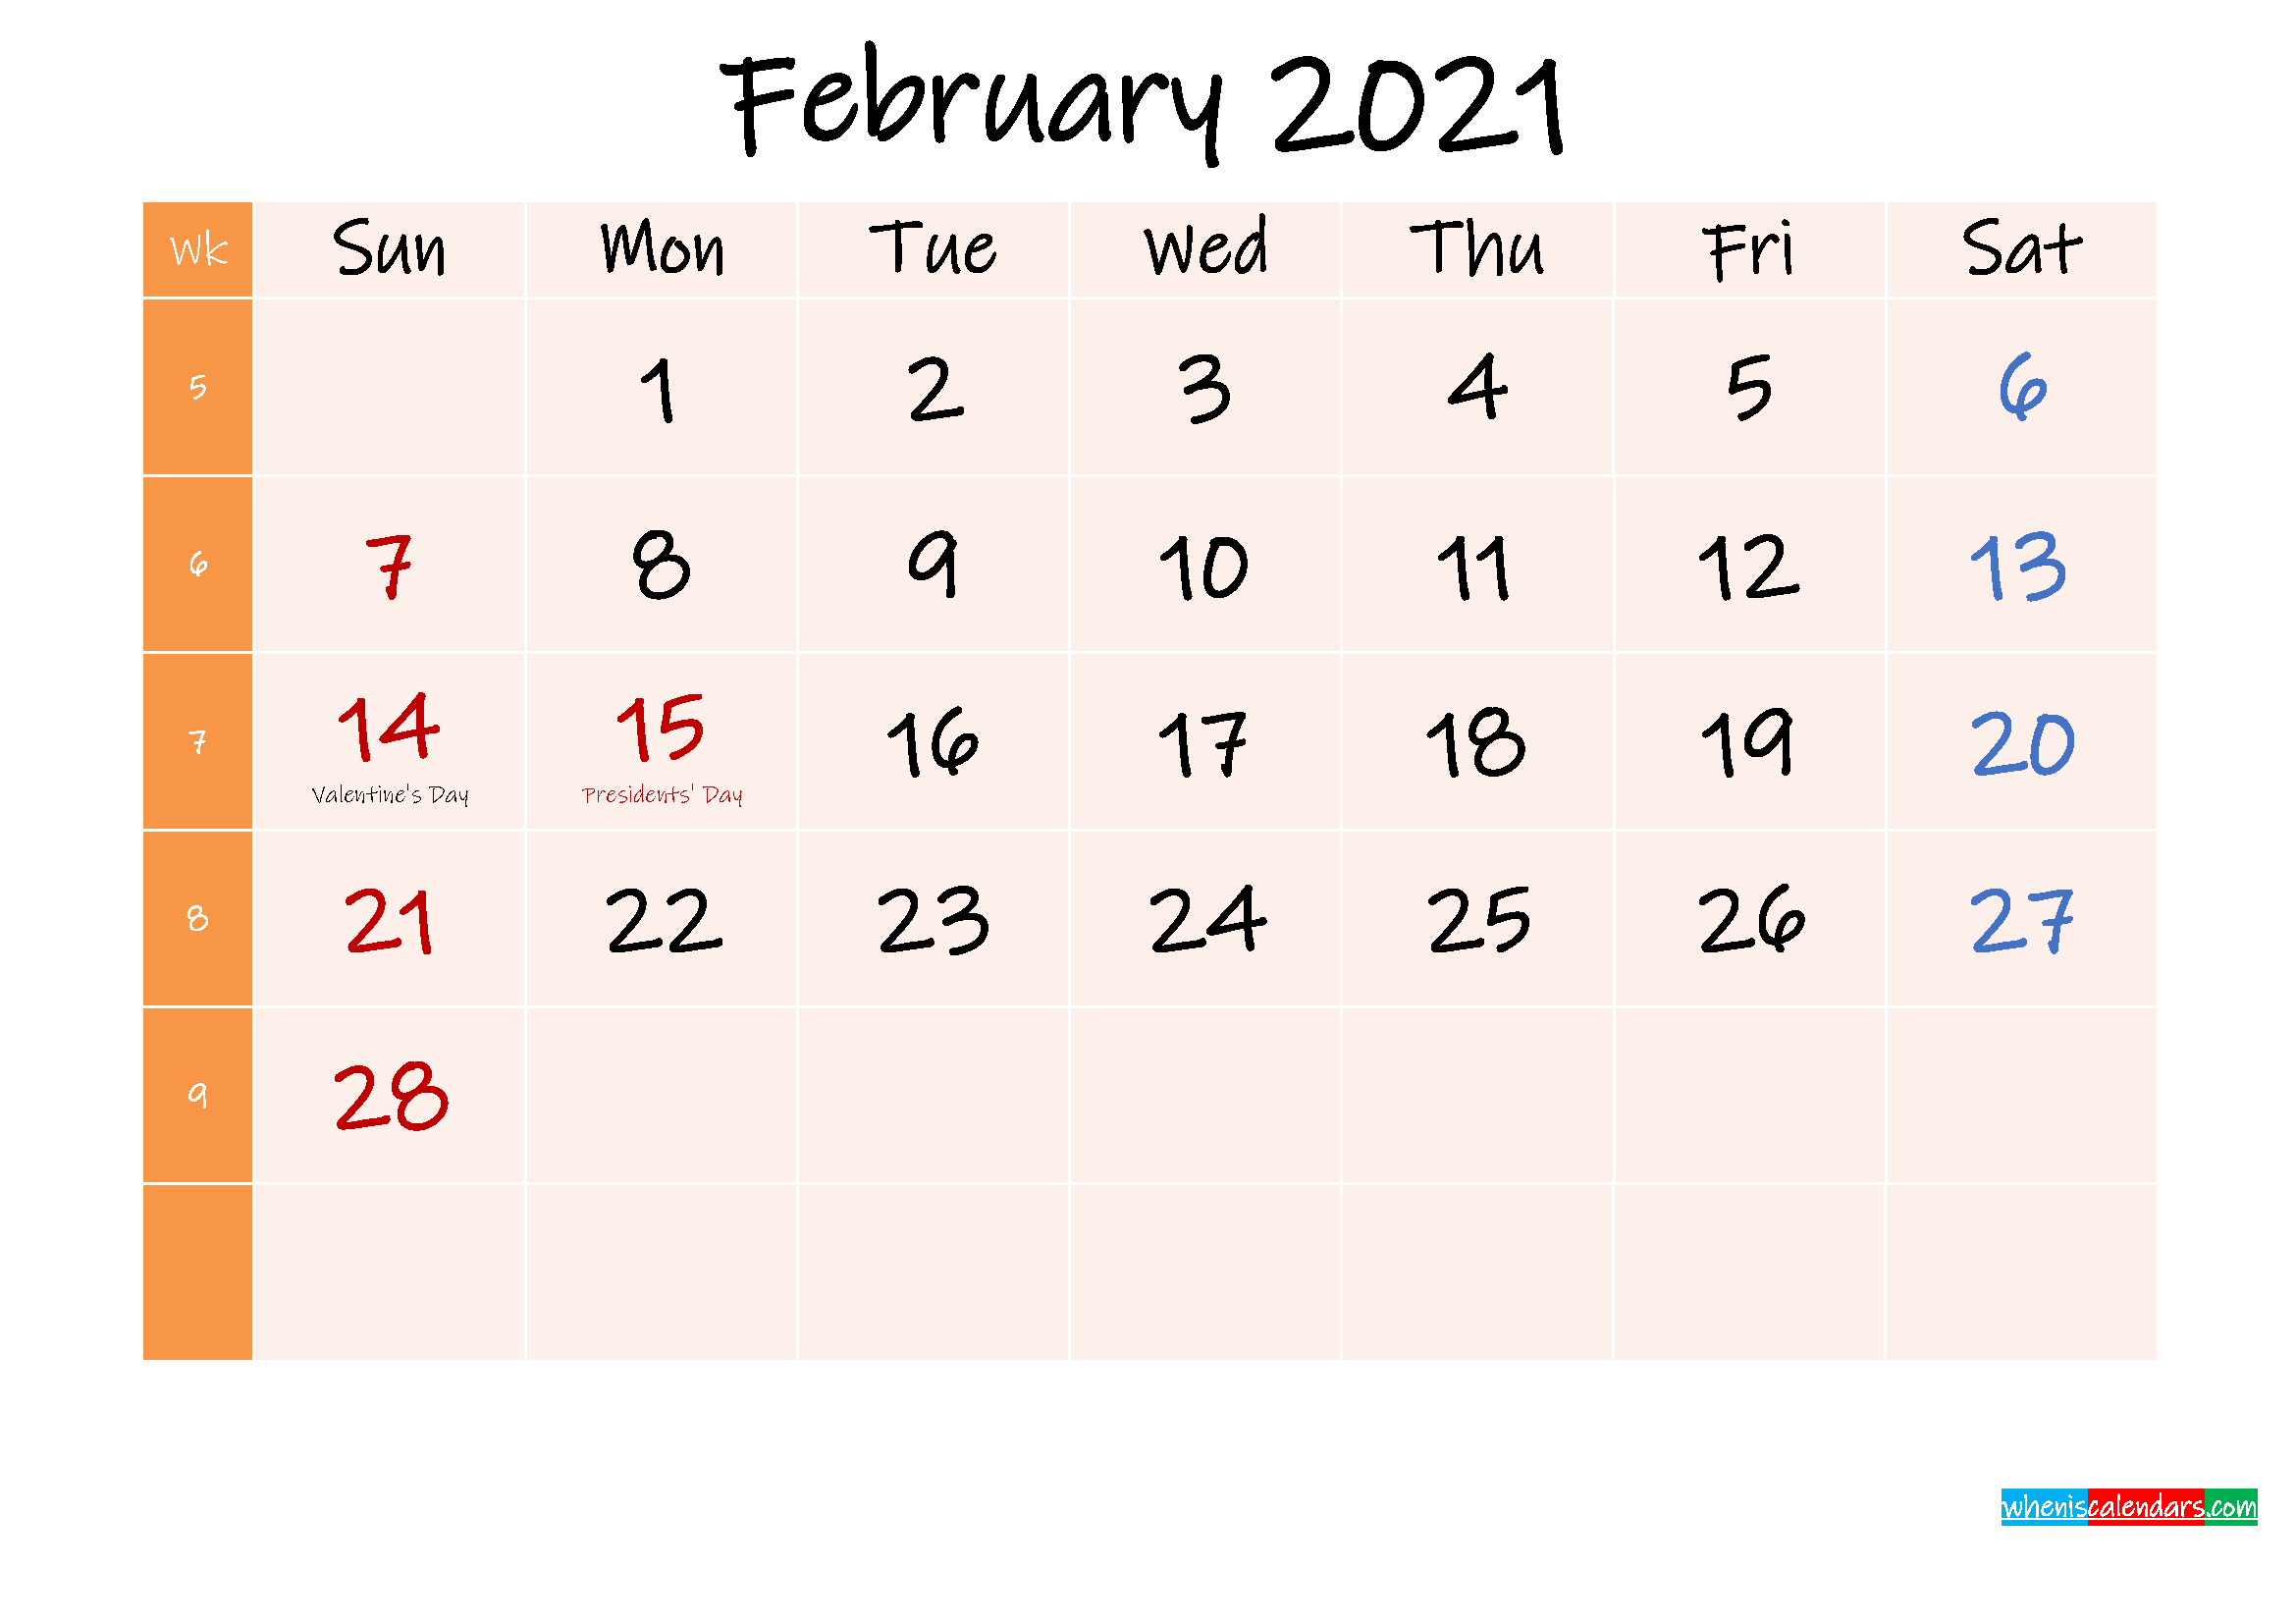 30 Free February 2021 Calendars for Home or Office ...